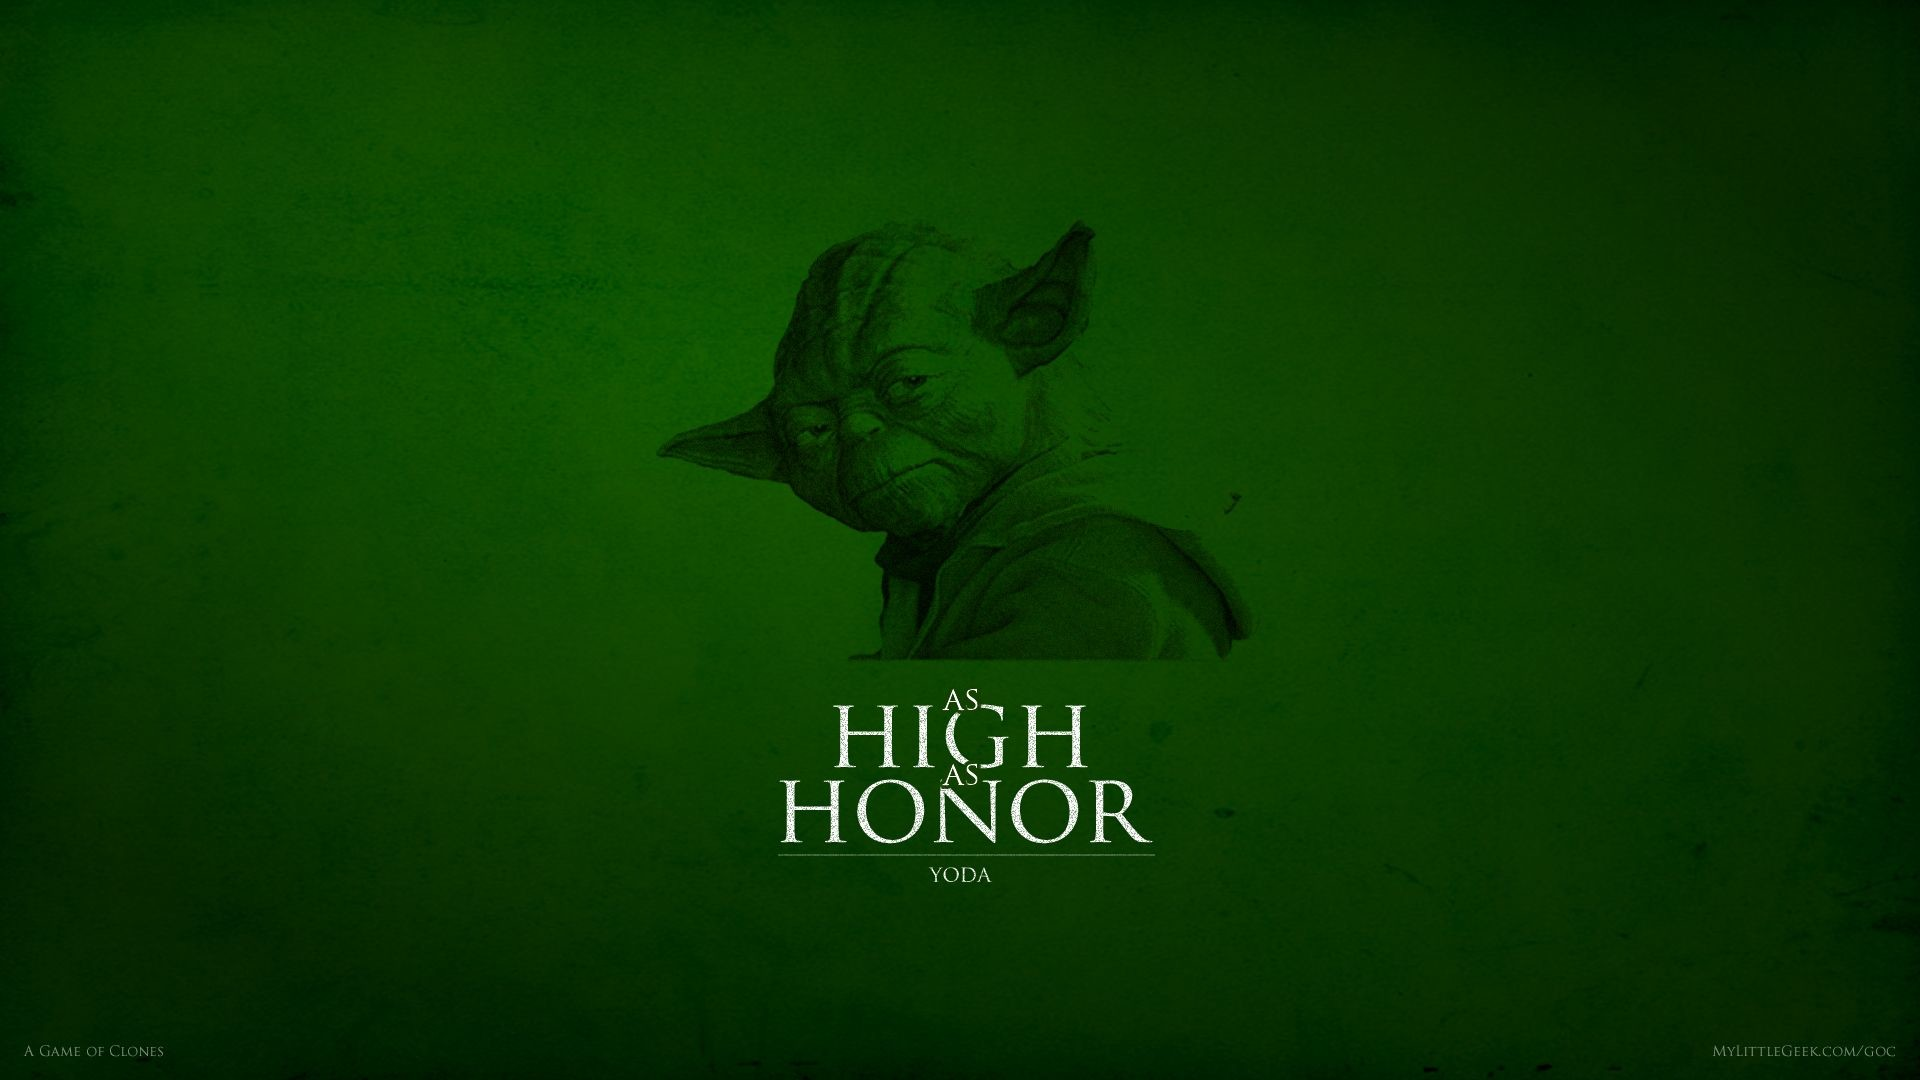 1920x1080 As High As Honor Yoda Wallpaper